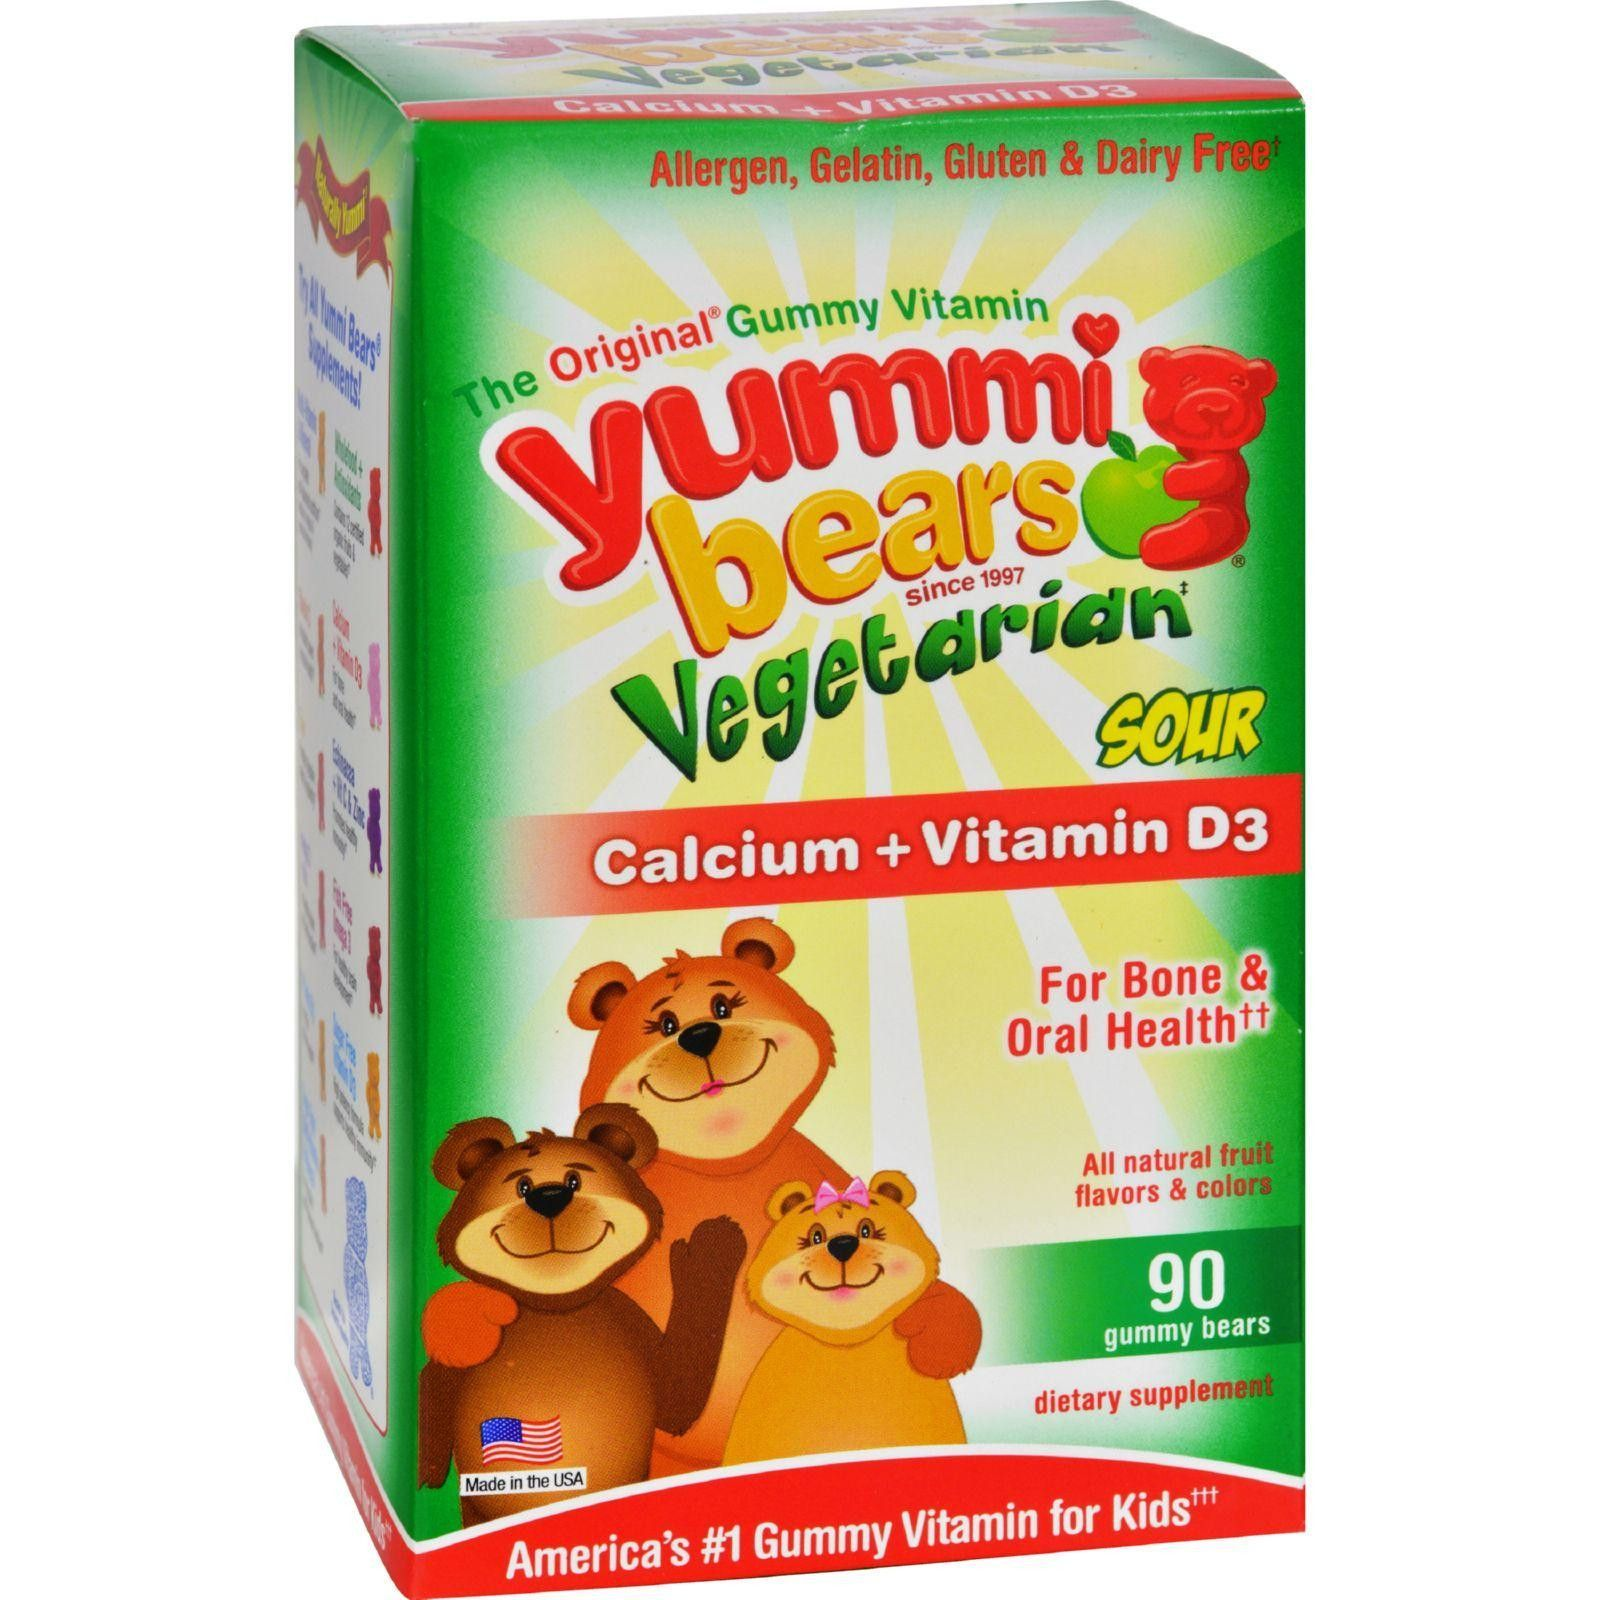 The Original Gummy Vitamin Allergen, Gluten, Gelatin and ...